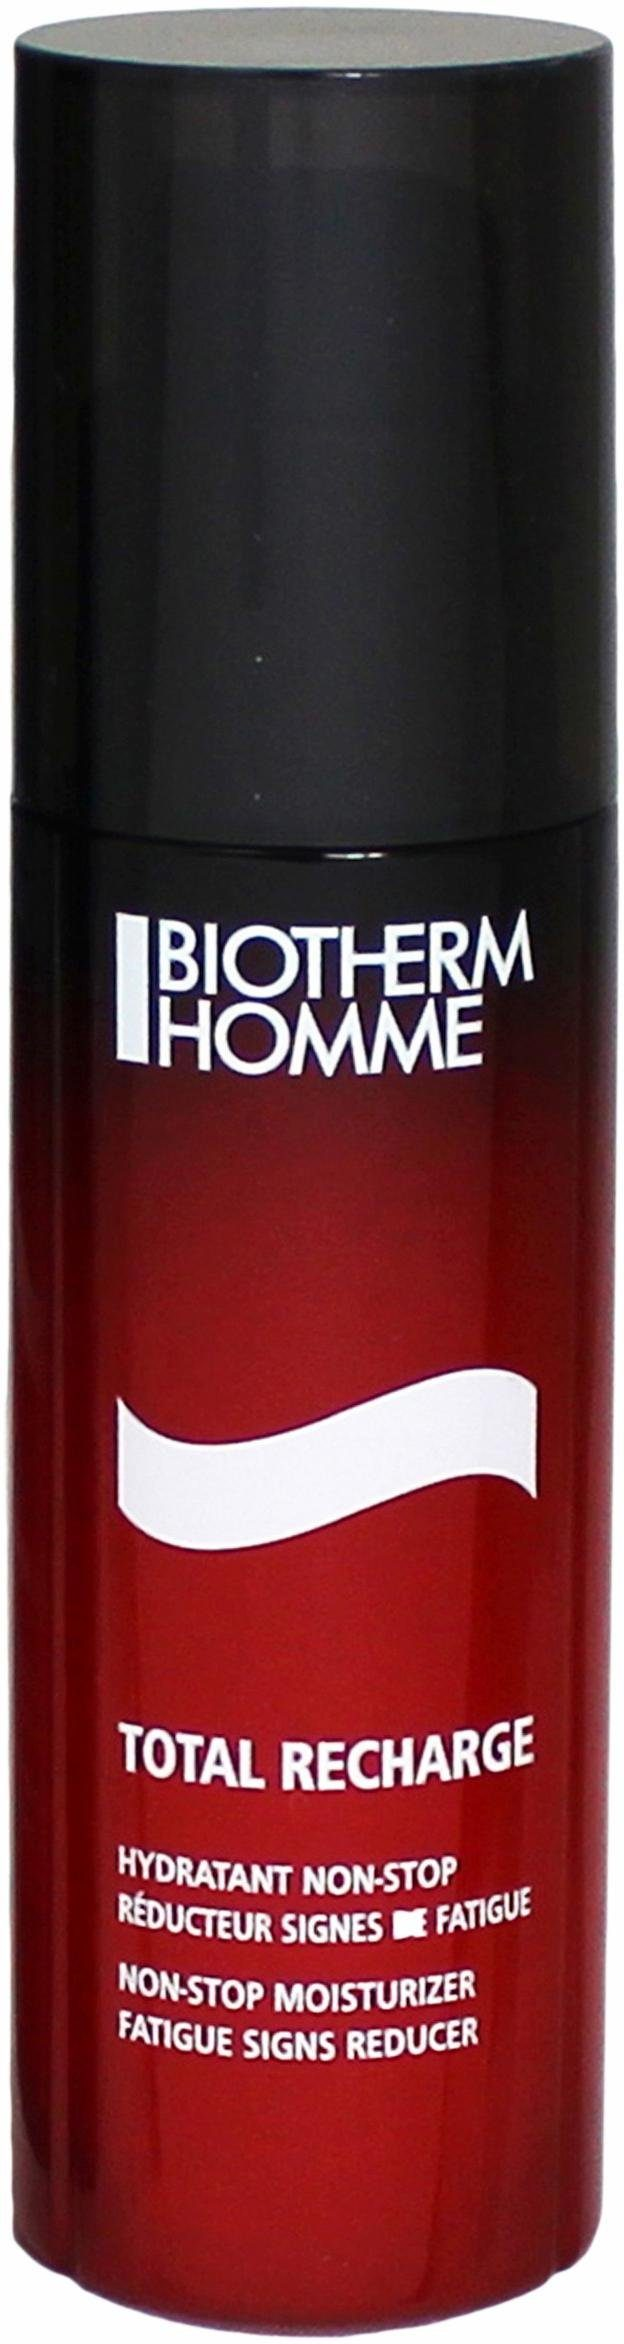 Biotherm Homme, »Total Recharge«, Feuchtigkeitspflege